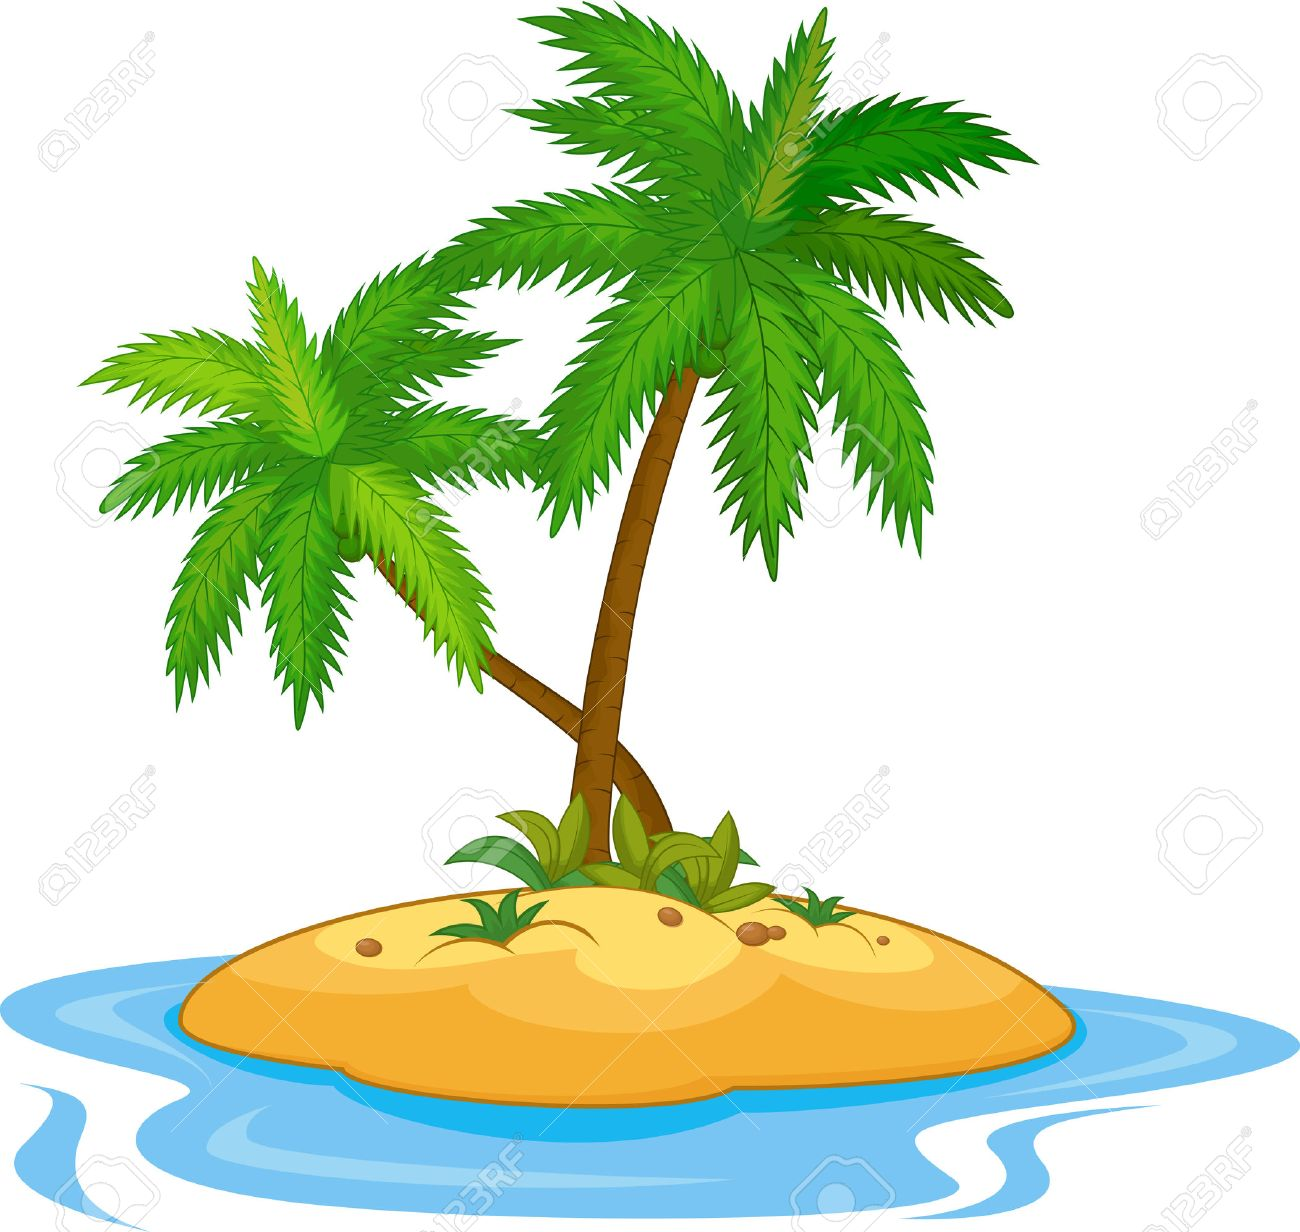 tropical island cartoon royalty free cliparts vectors and stock rh 123rf com tropical island clipart black and white